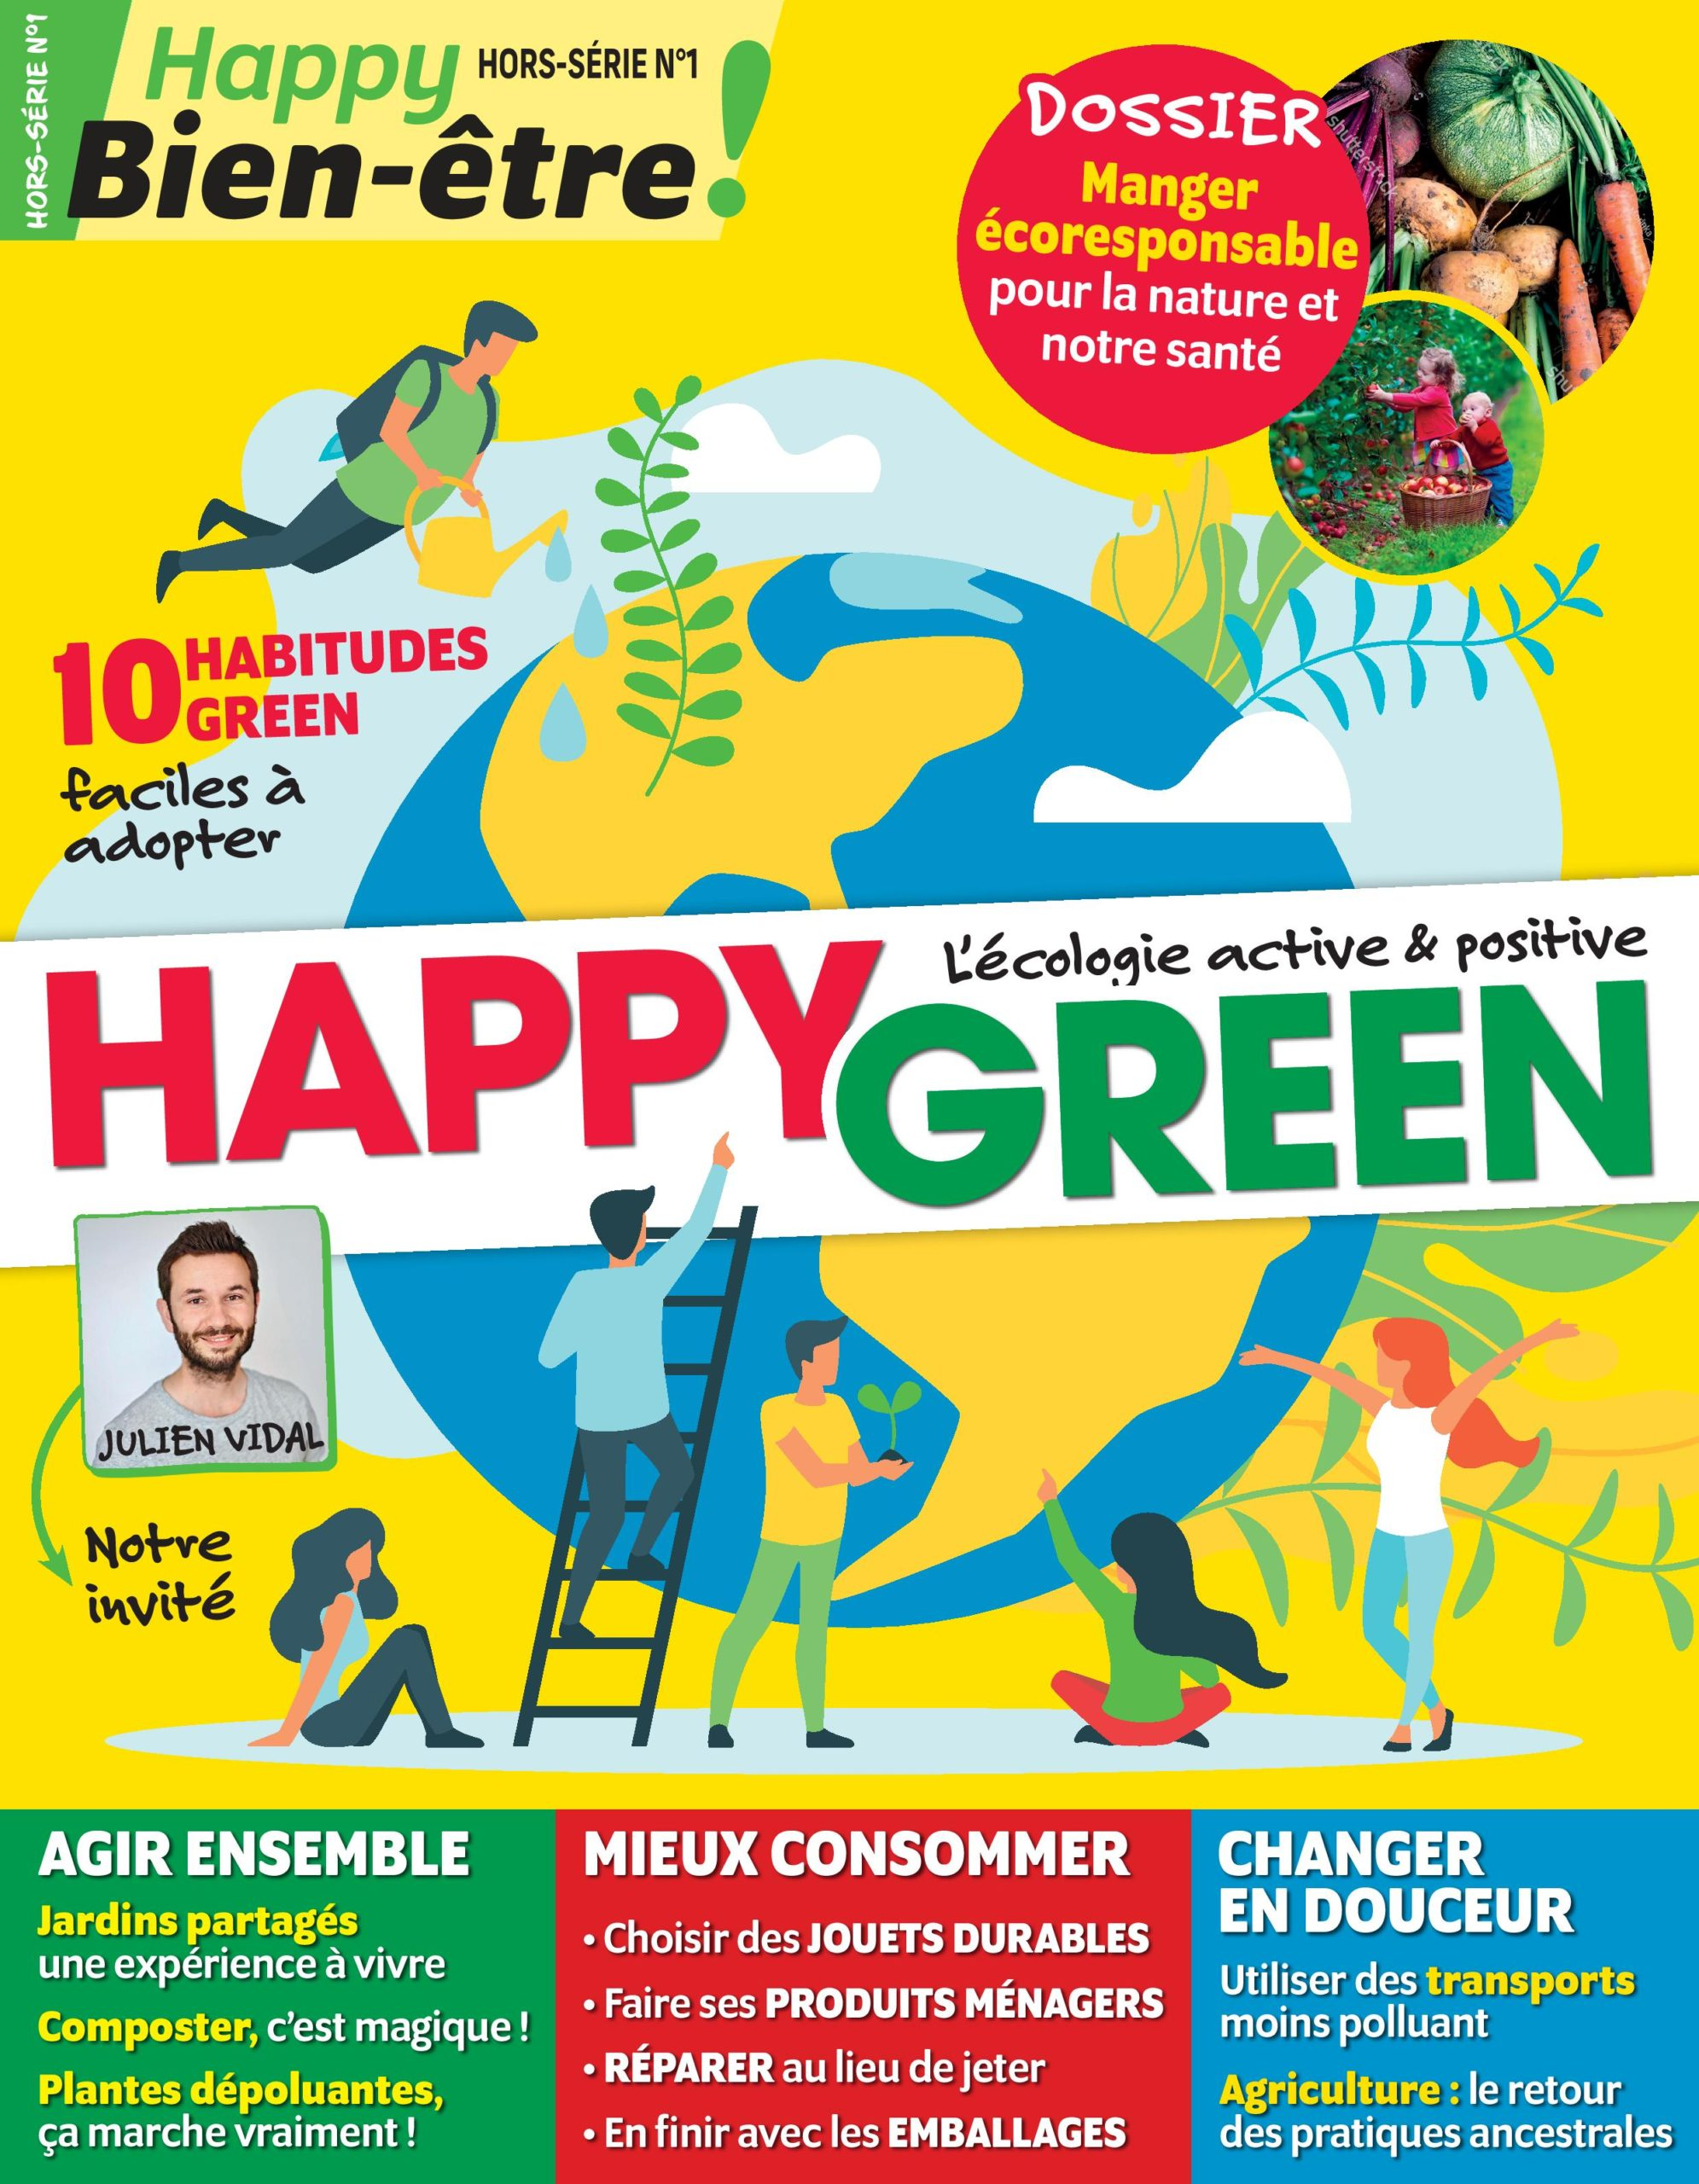 Couverture du magazine hors série Happy Green